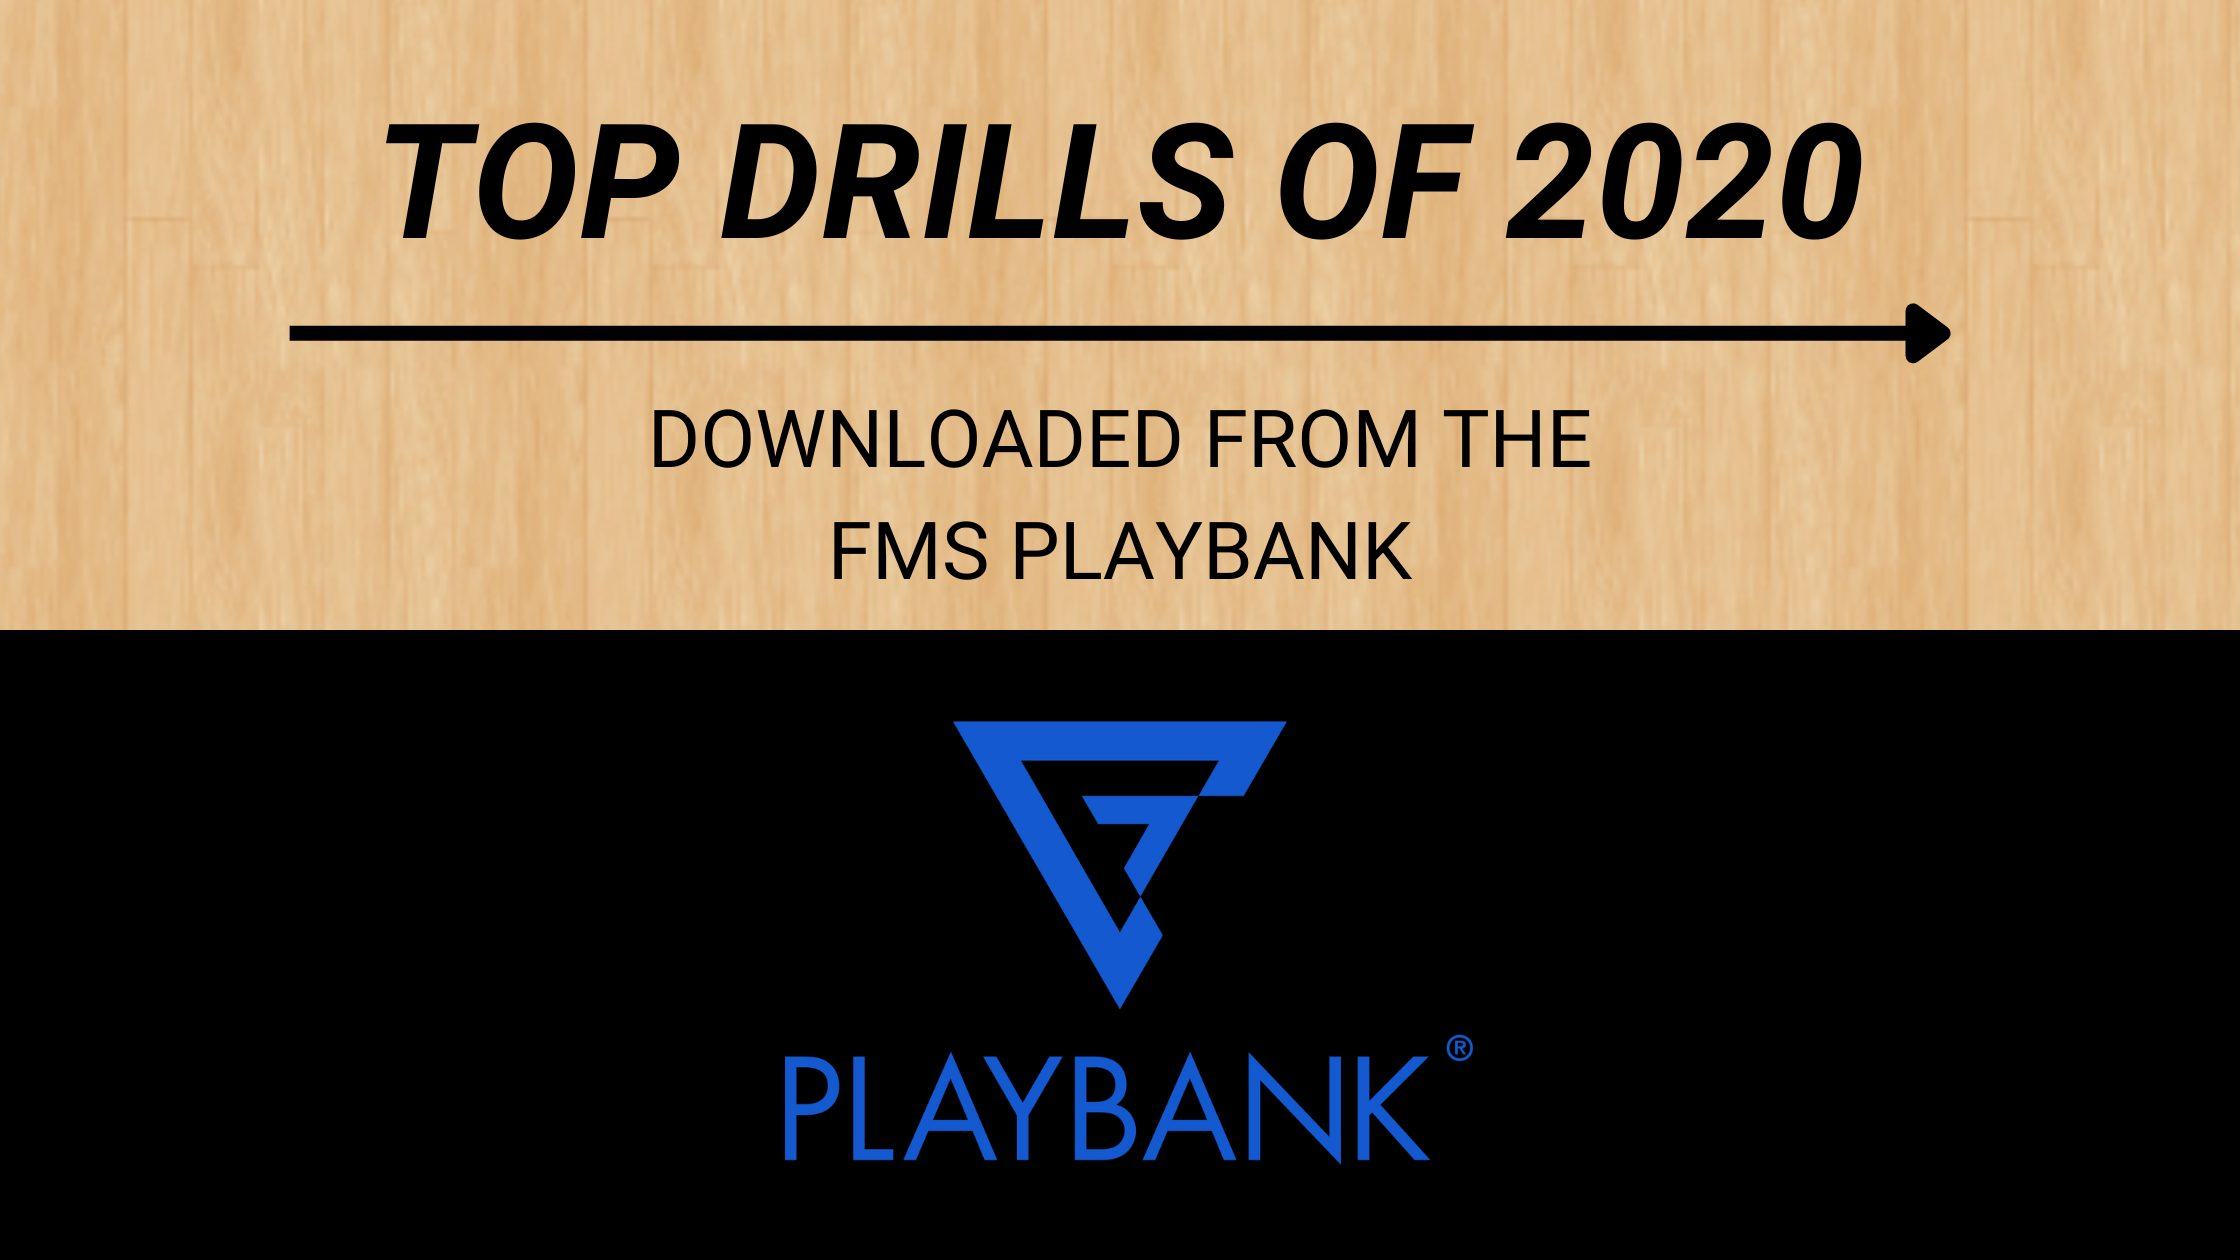 basketball drills, coaching, basketball coach, offensive drills, defensive drills, transition drills, small sided games, conditioning drills, XsOs, play diagrams, FastModel Sports, FastDraw